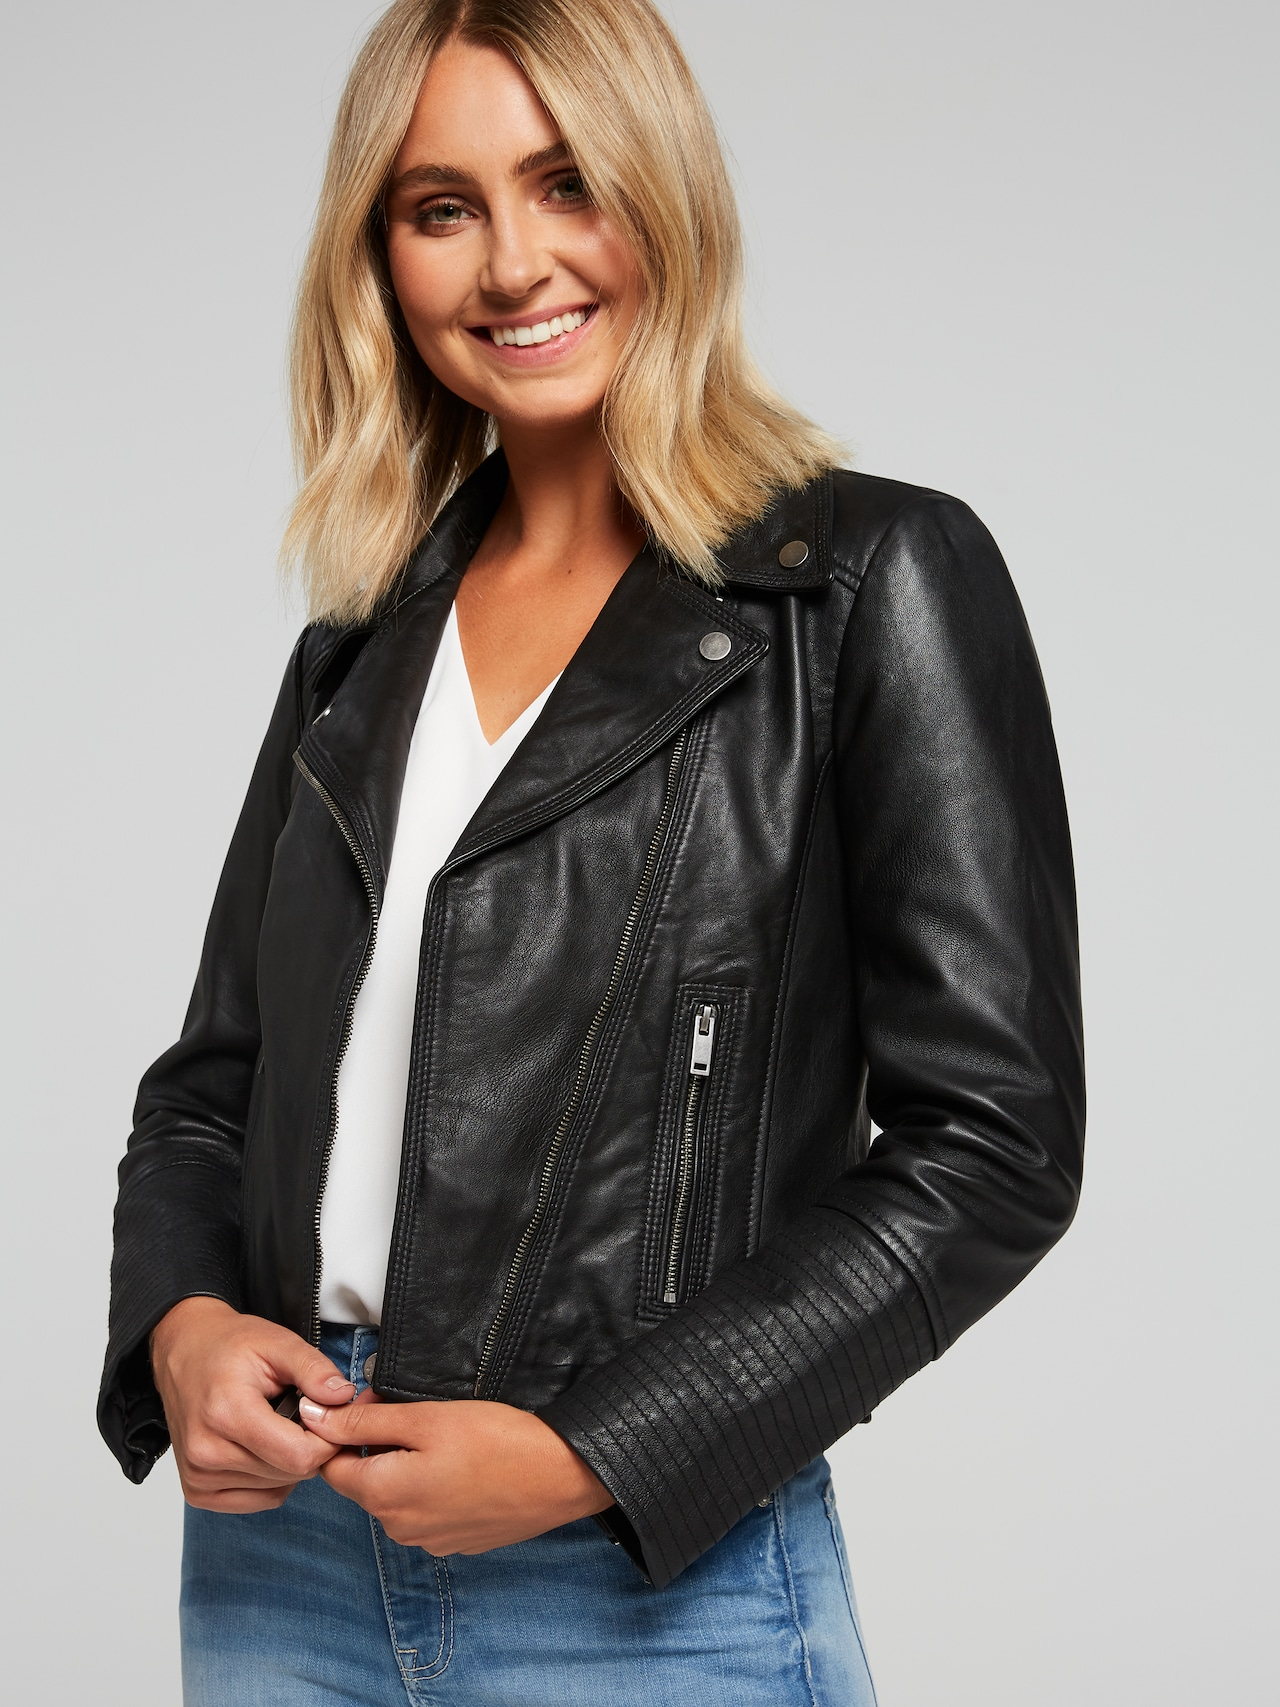 5071ecf3ee5f Ava Leather Jacket - Just Jeans Online